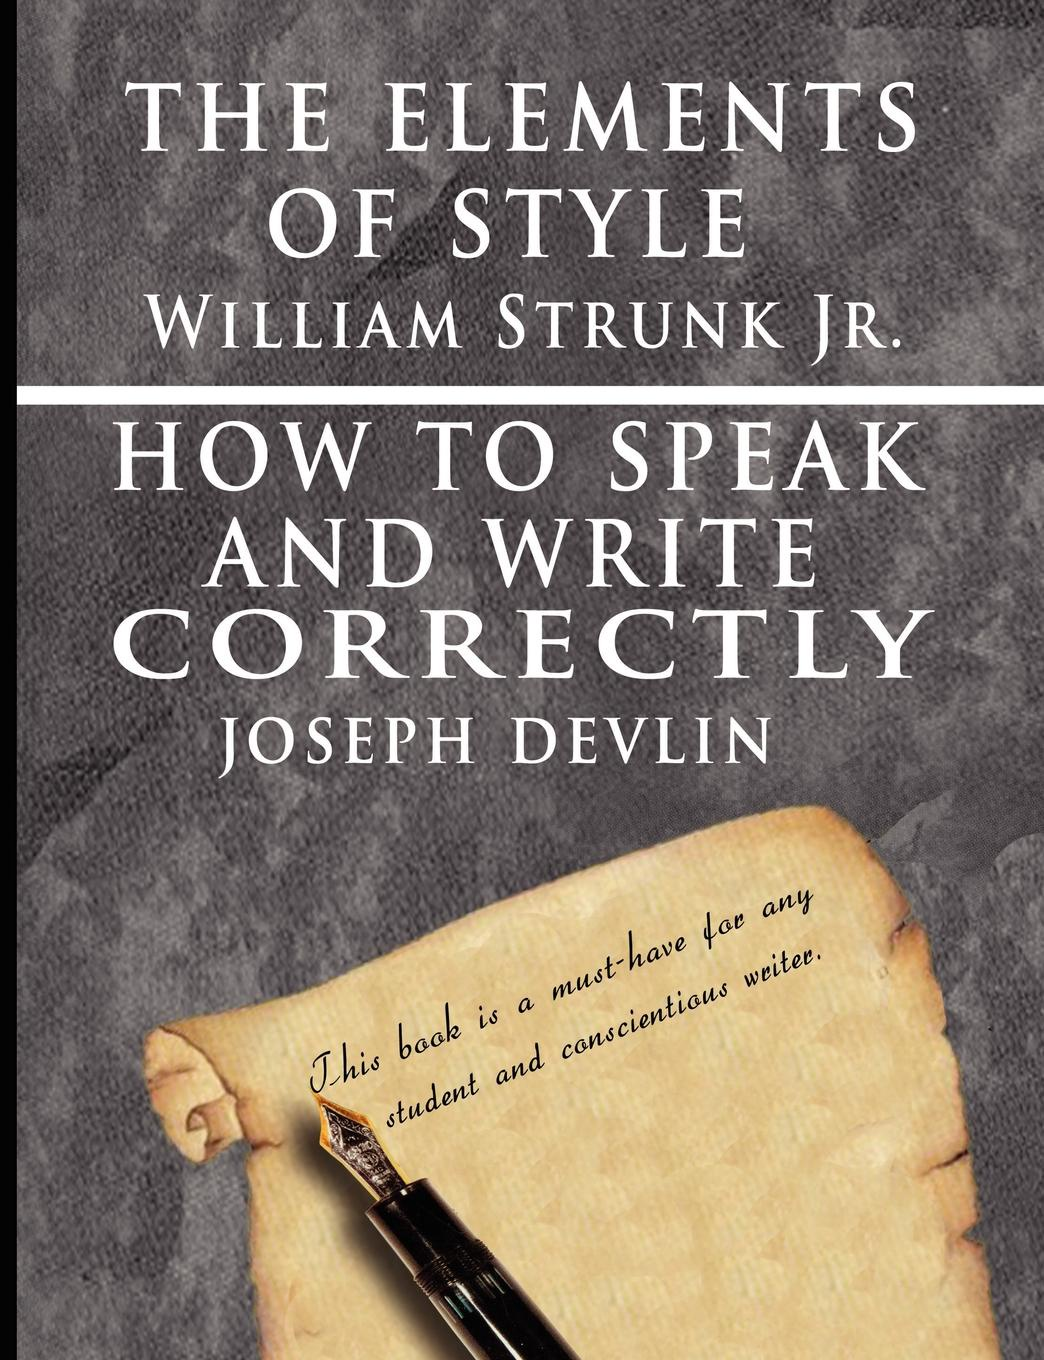 William Strunk jr., Joseph Devlin The Elements of Style by William Strunk jr. . How To Speak And Write Correctly by Joseph Devlin - Special Edition william jr strunk the elements of style